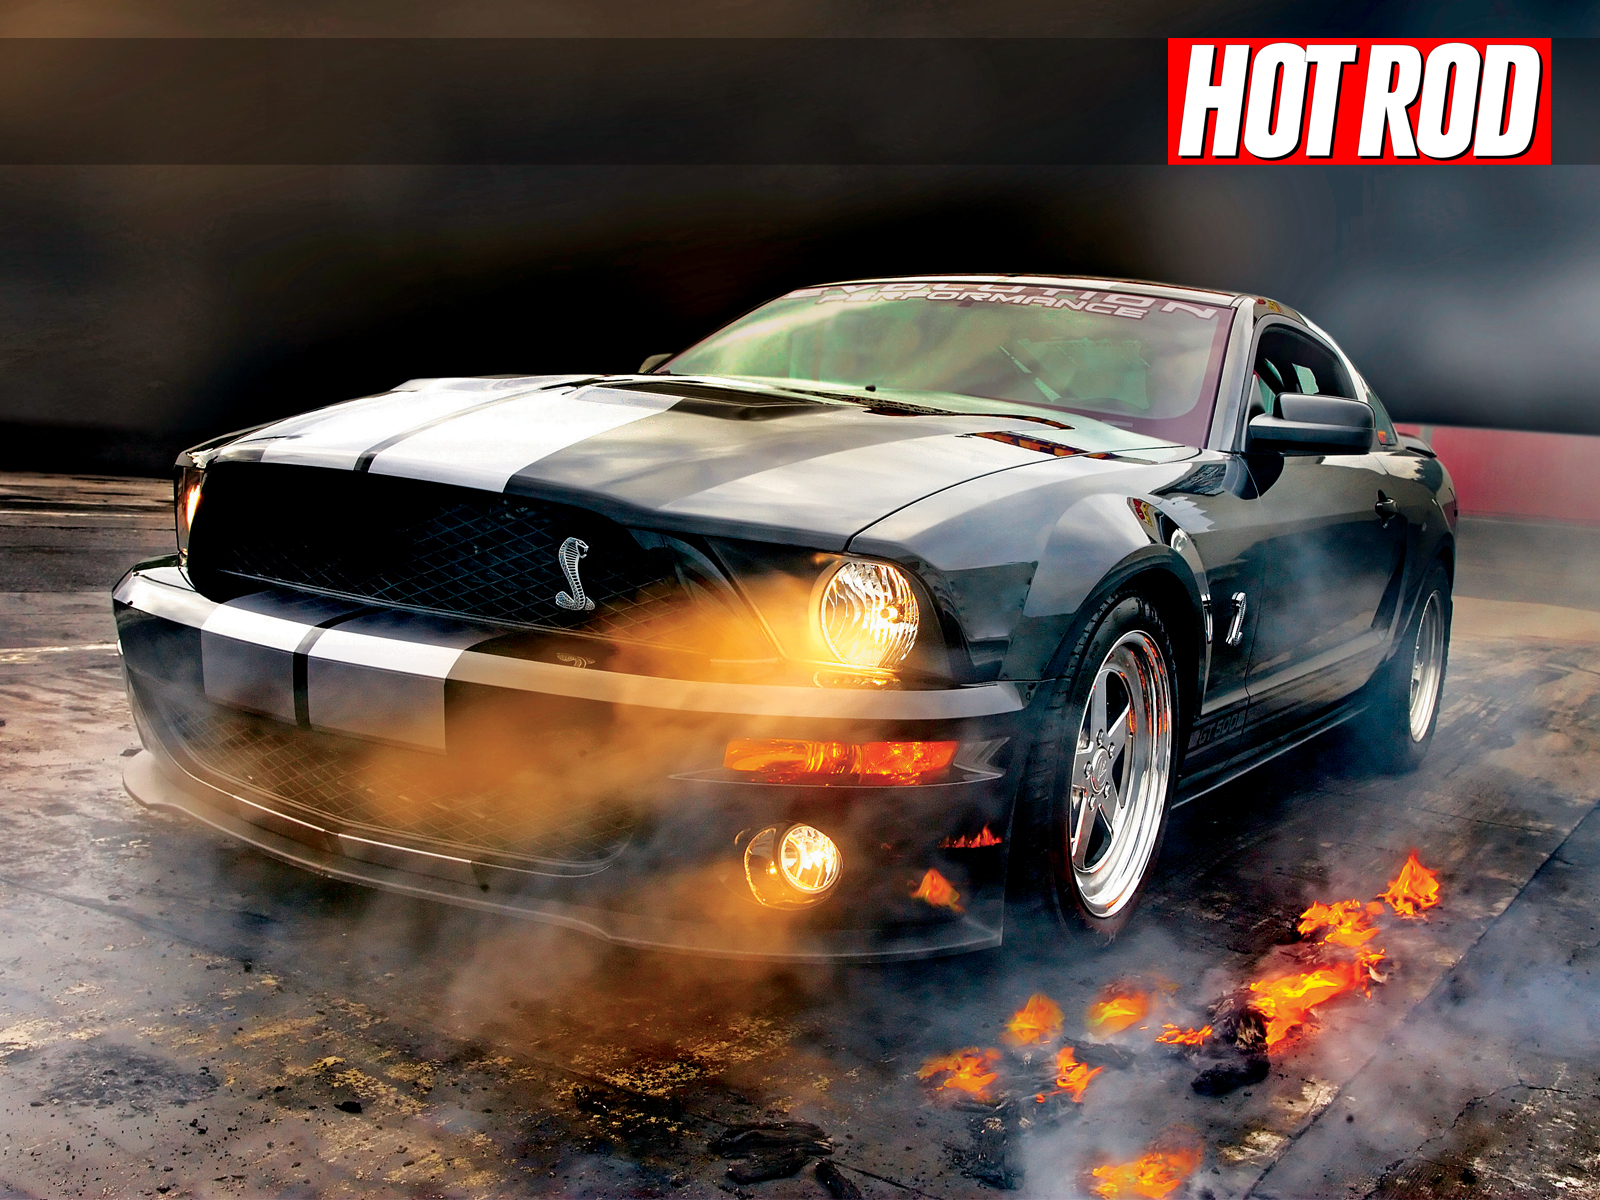 wallpapers autos tunning coches tuning wallpapers de autos. Black Bedroom Furniture Sets. Home Design Ideas